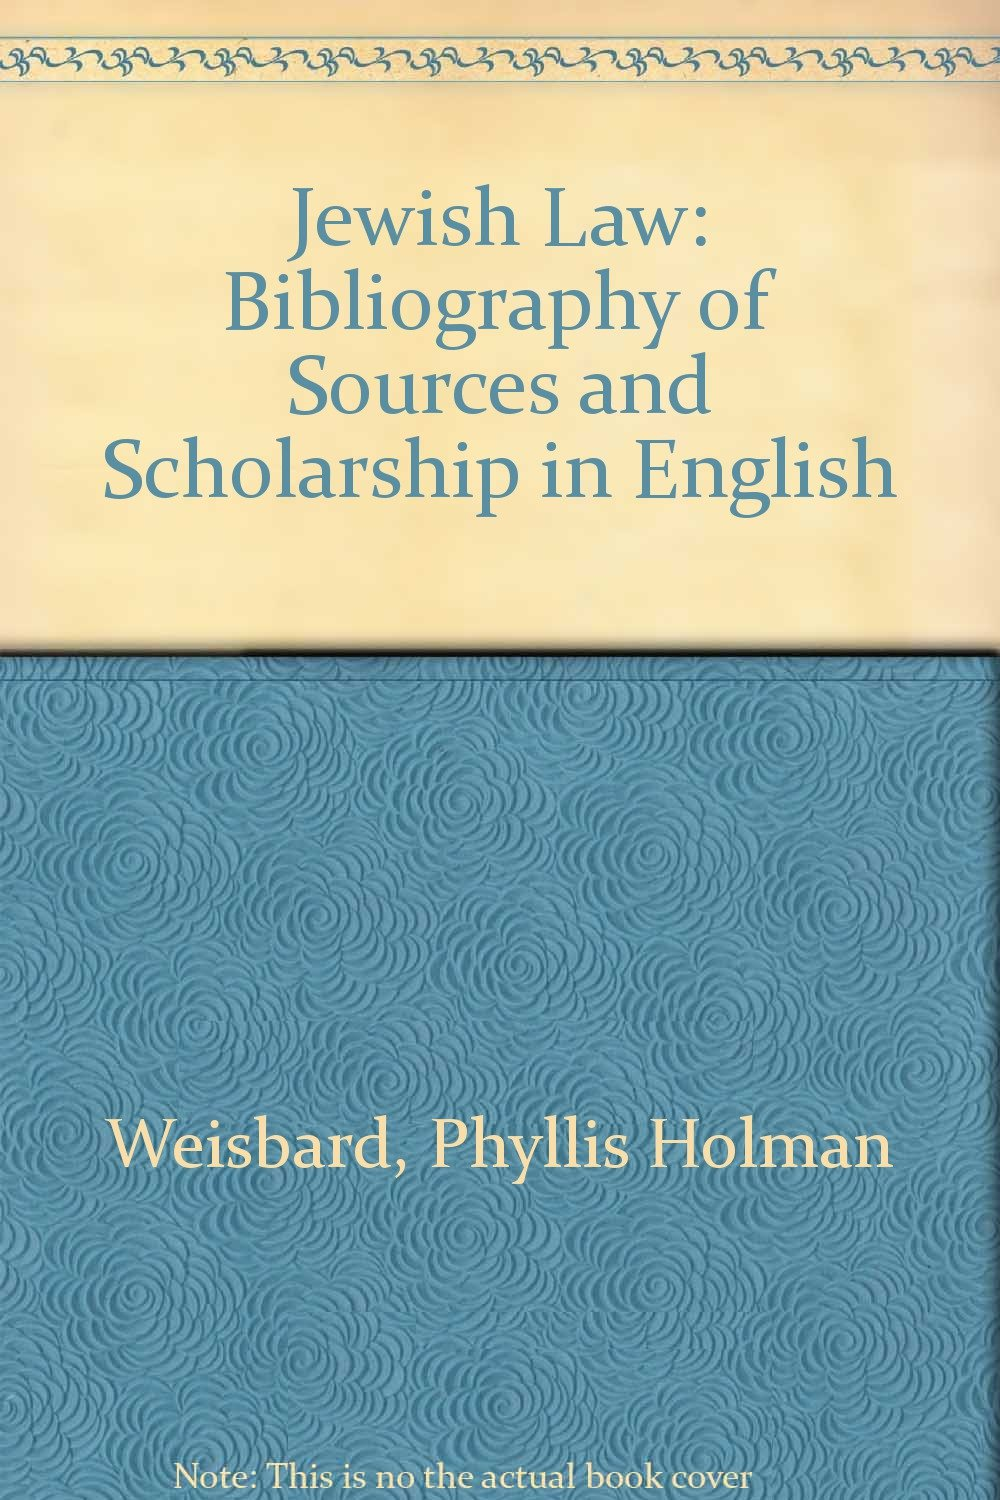 jewish-law-bibliography-of-sources-and-scholarship-in-english